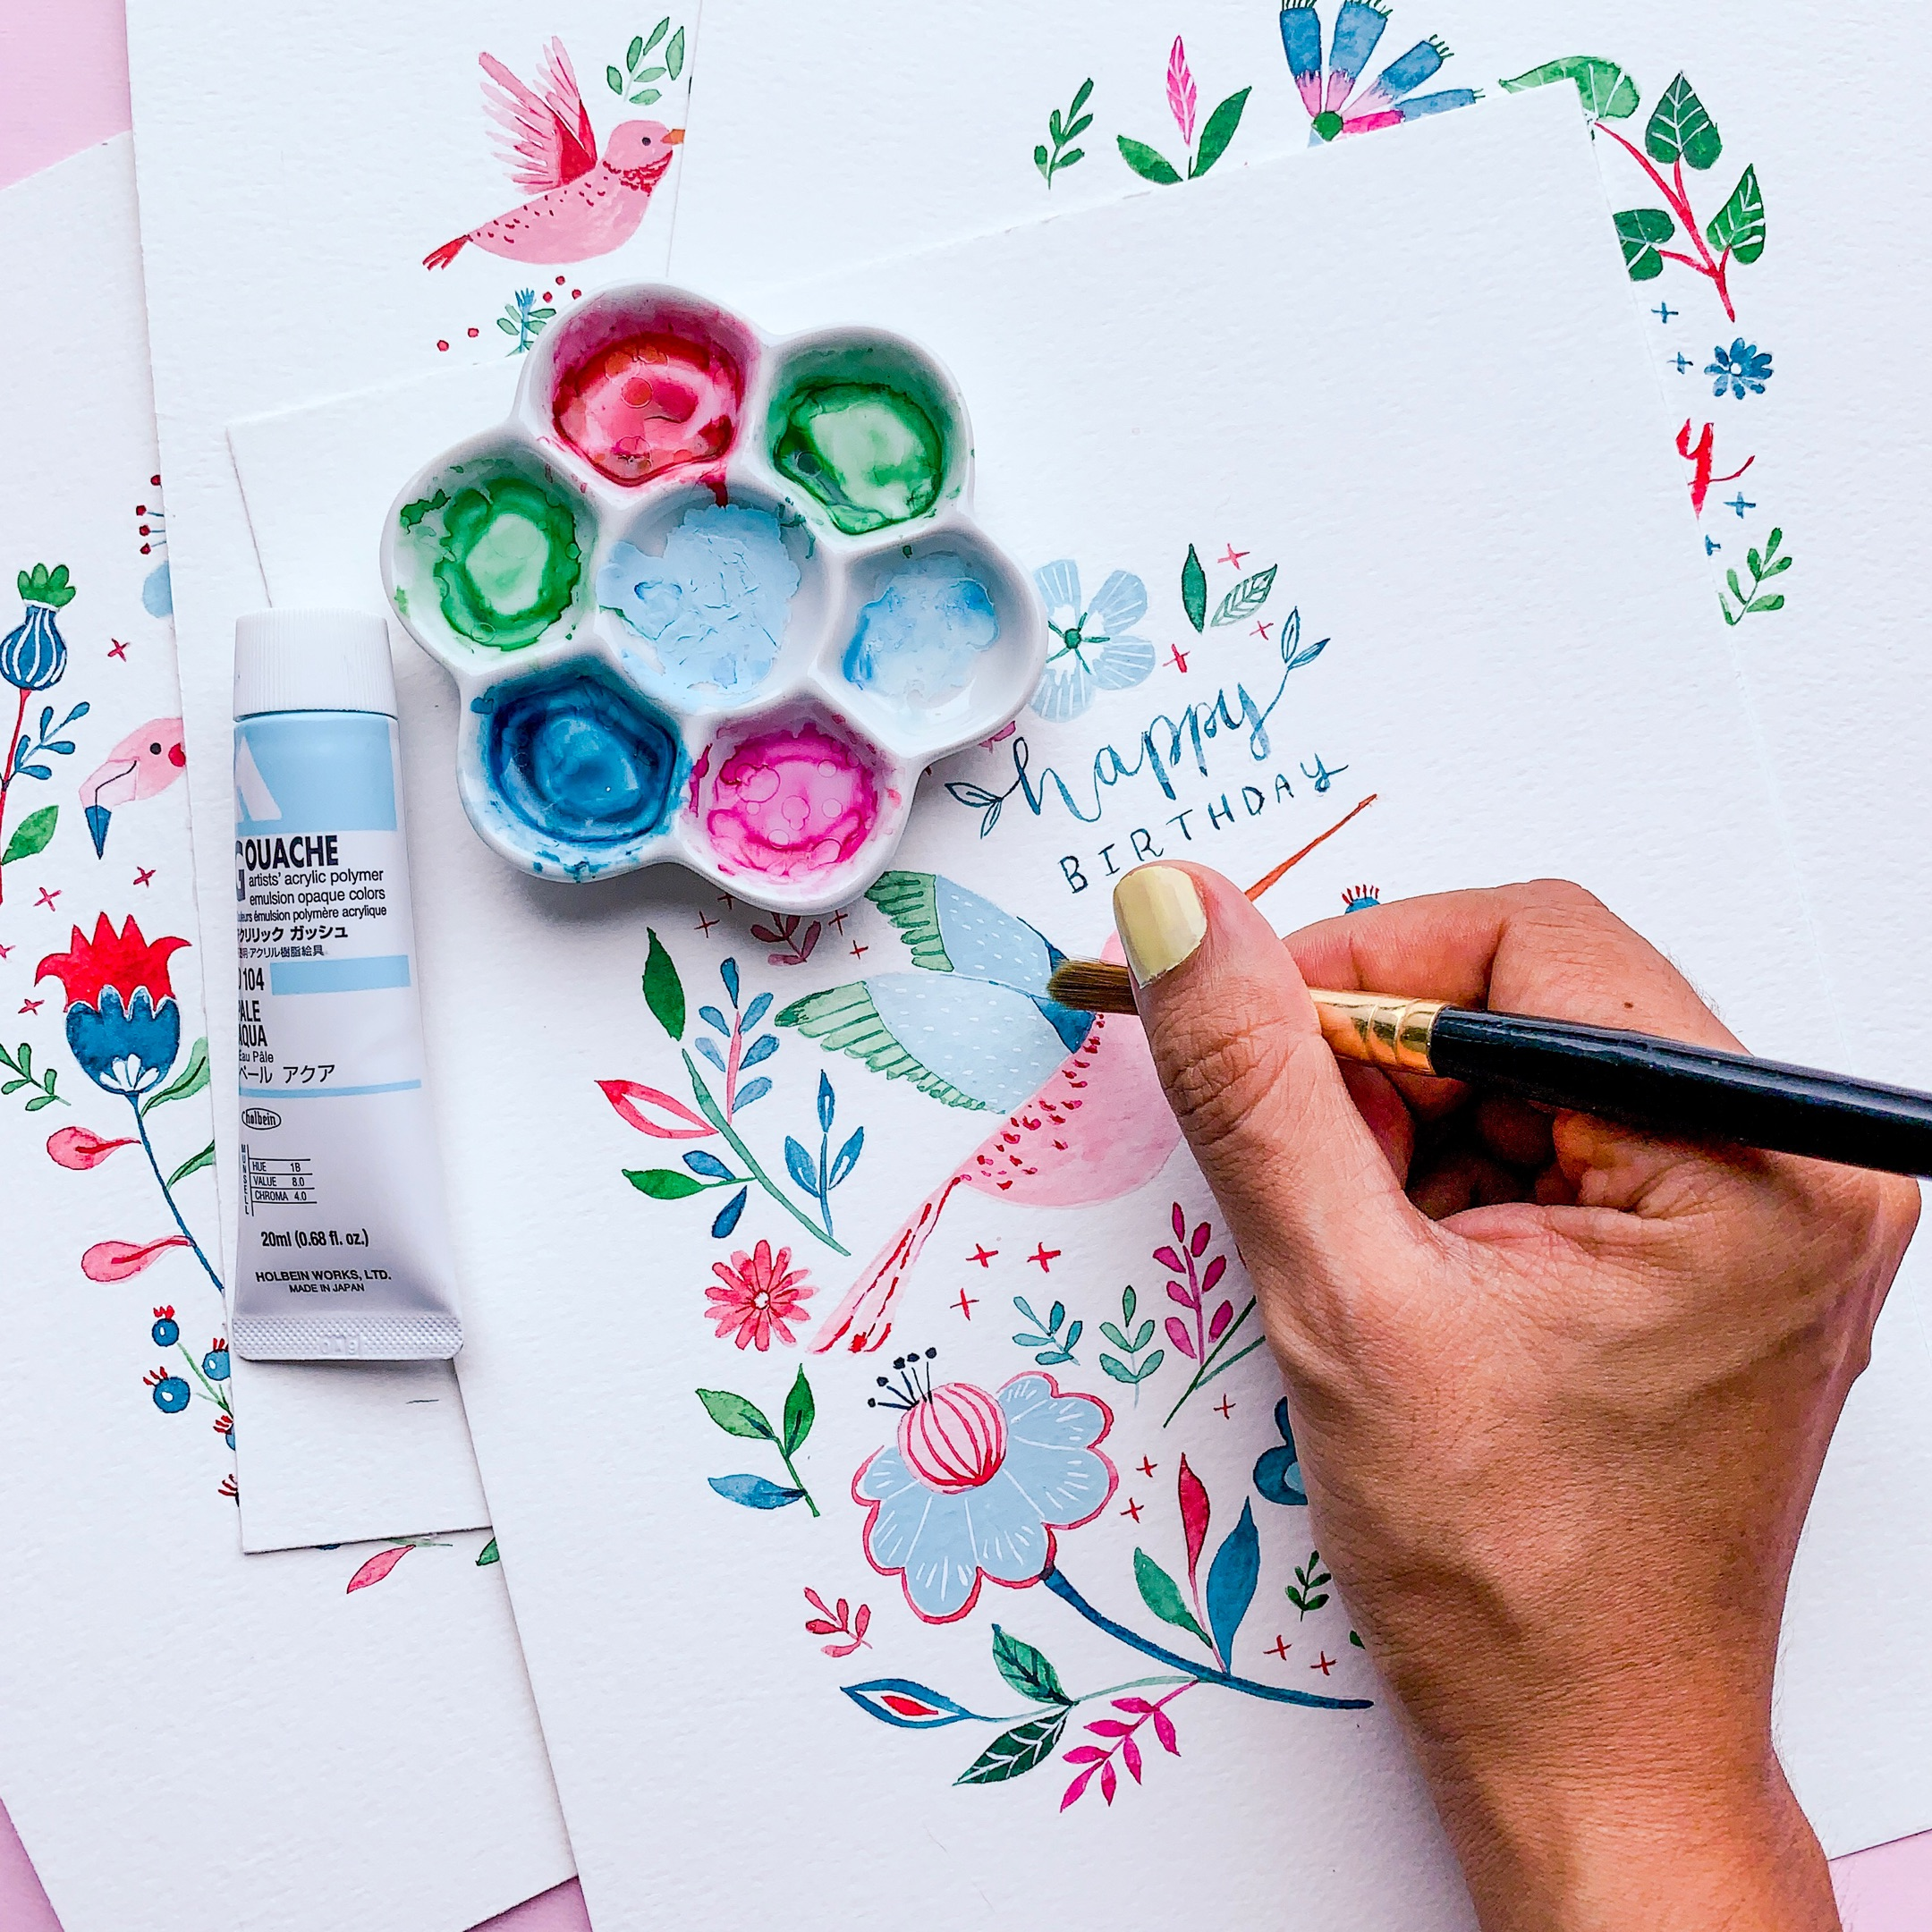 Behind the scenes: Painting greeting cards - Gina Maldonado2.jpg